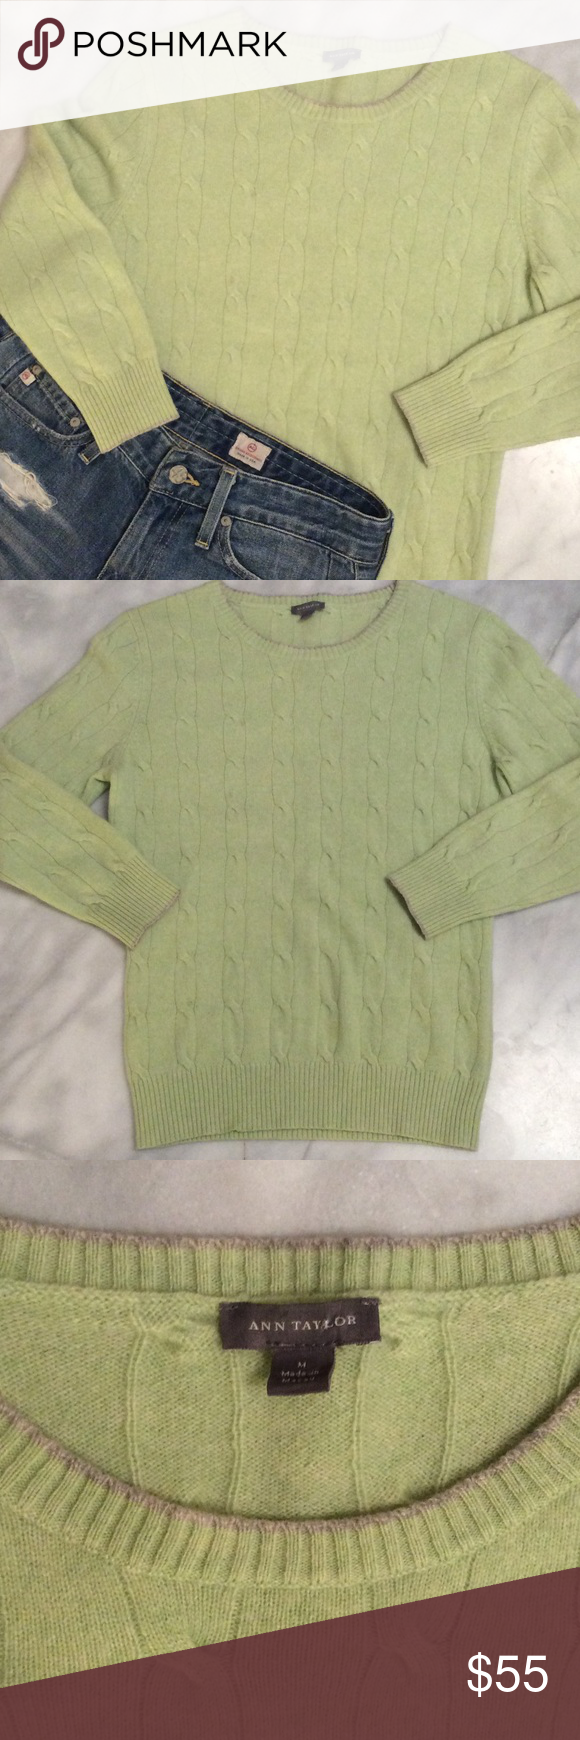 $165 | Ann Taylor cashmere cable knit sweater Cashmere cable knit sweater with 3/4 sleeves in a fun neon green color. The sweater is in great used condition - no pilling, minimal wear. Size M fits size S. 100% cashmere Ann Taylor Sweaters